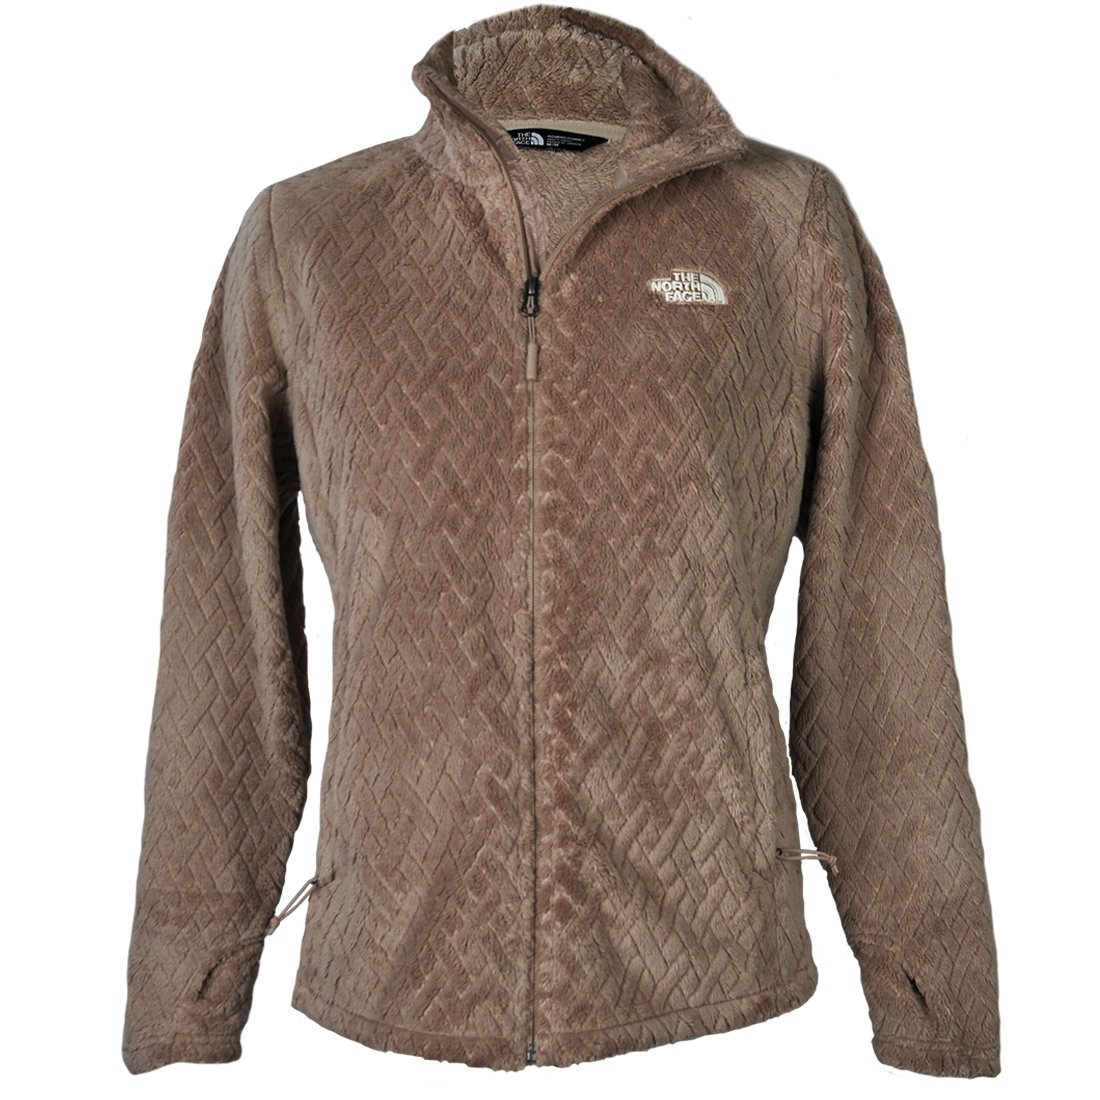 The North Face Women's Novelty Osito Jacket Does Skin Brown Basket Weave Size Medium